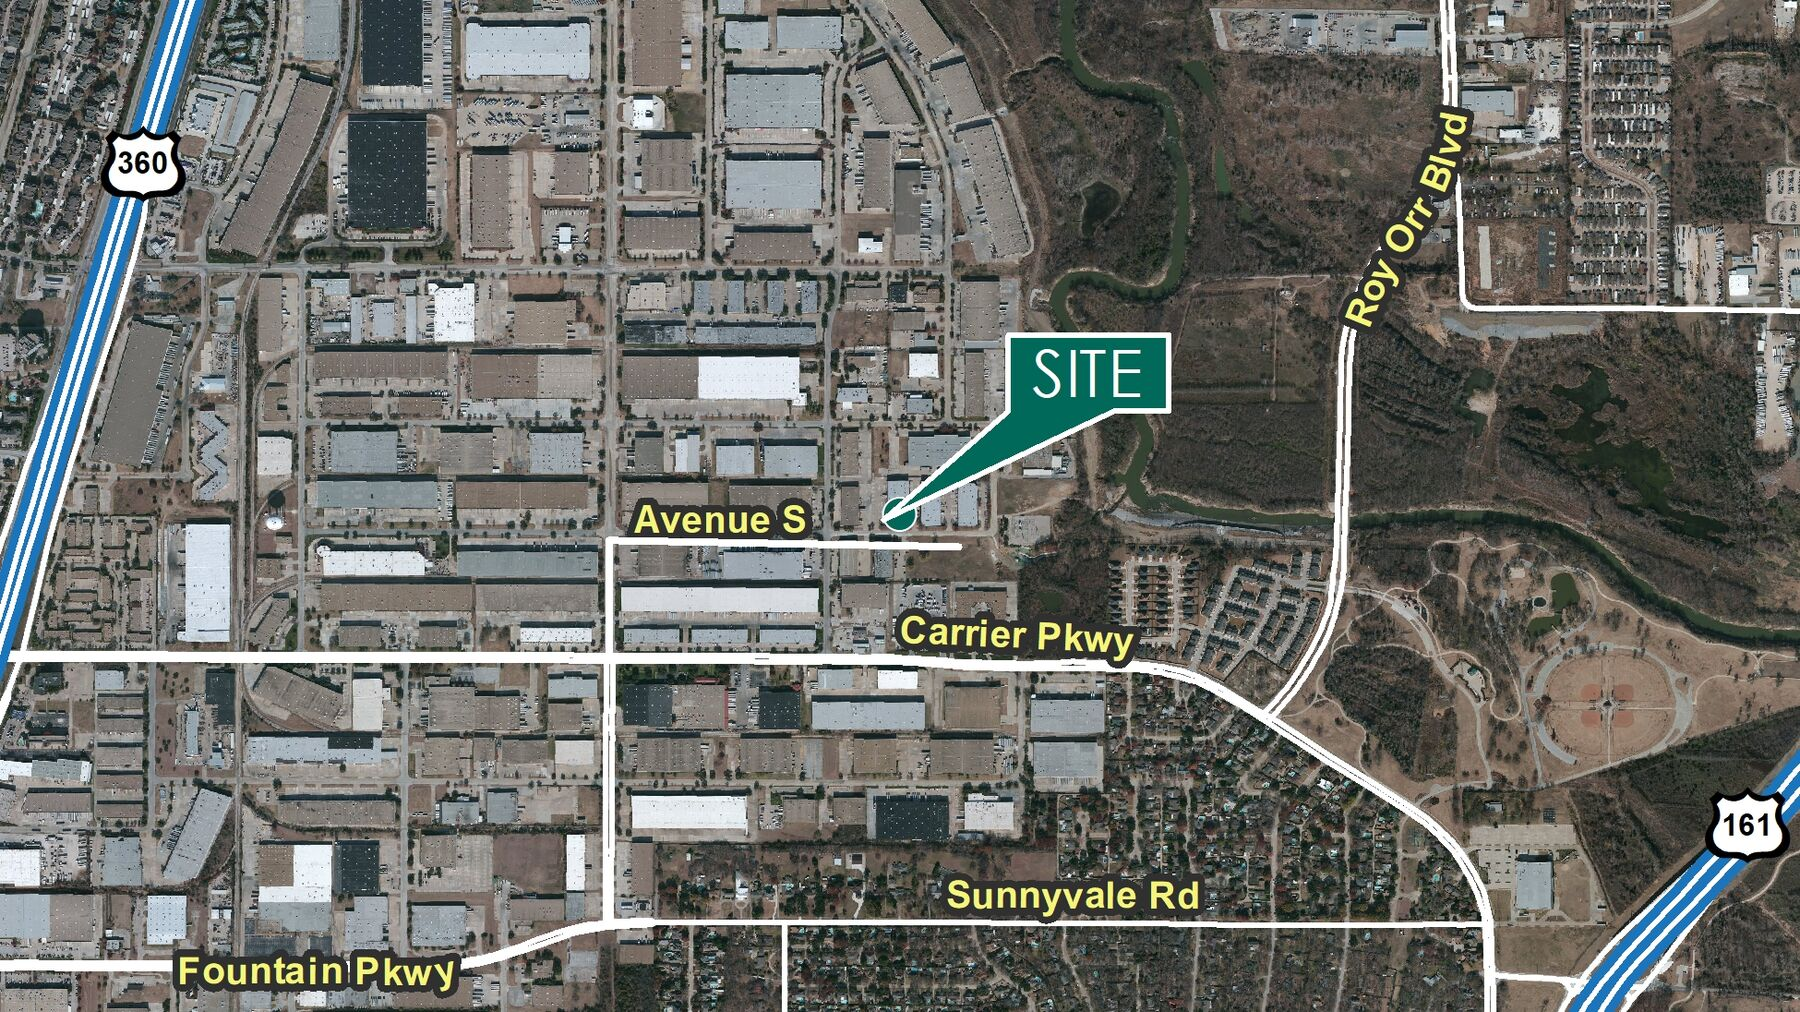 DPM-Prologis-Great-Southwest-72-DAL01772-1475-Avenue-S_AerialMap.jpg